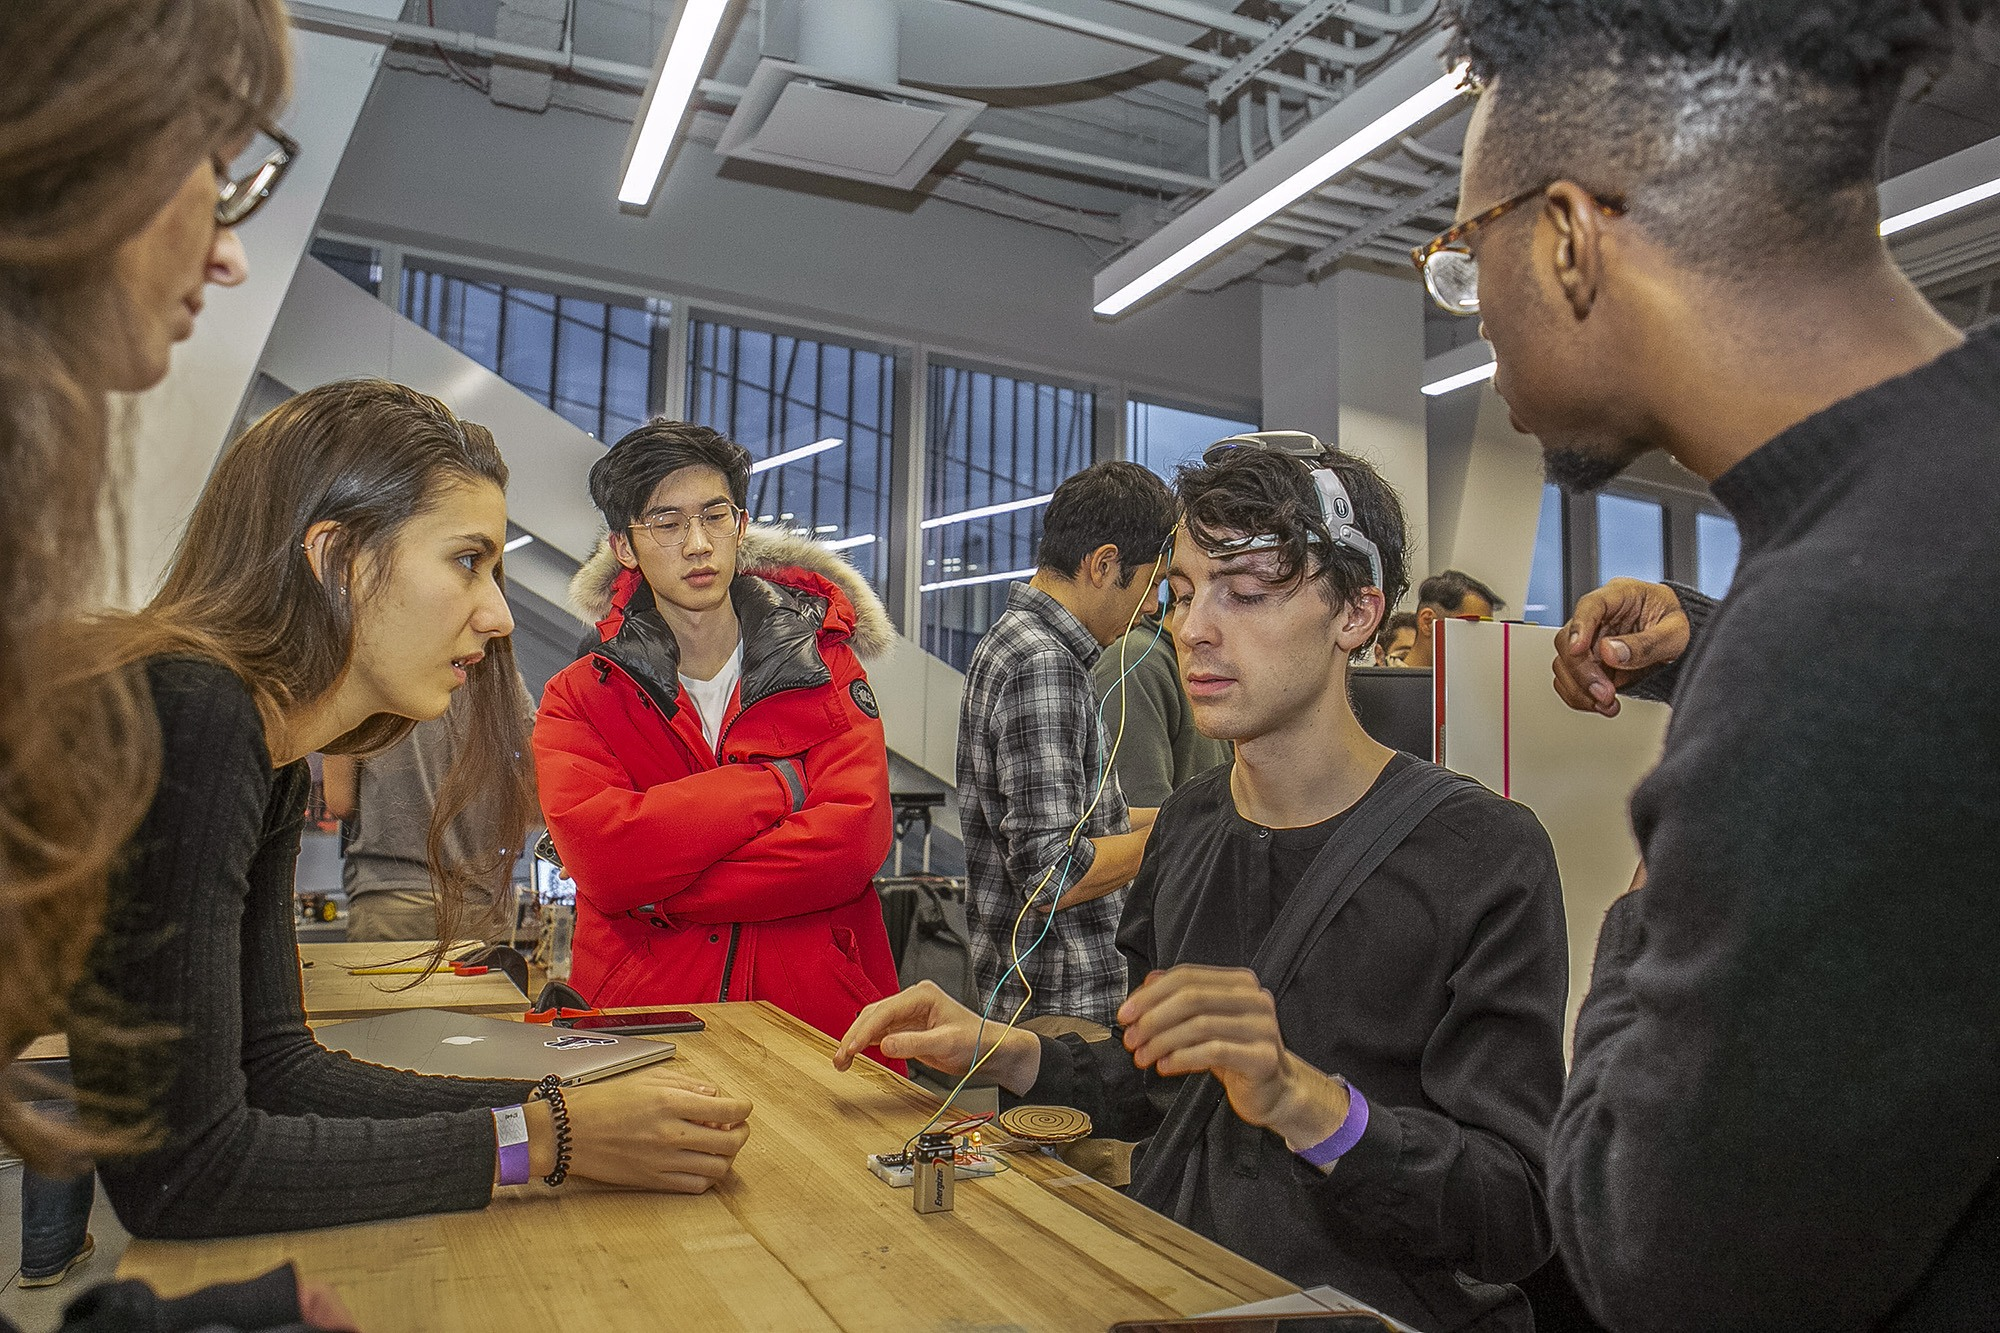 Cornell Tech students and faculty co-create with industry partners and user communities to design technologies with direct impact.